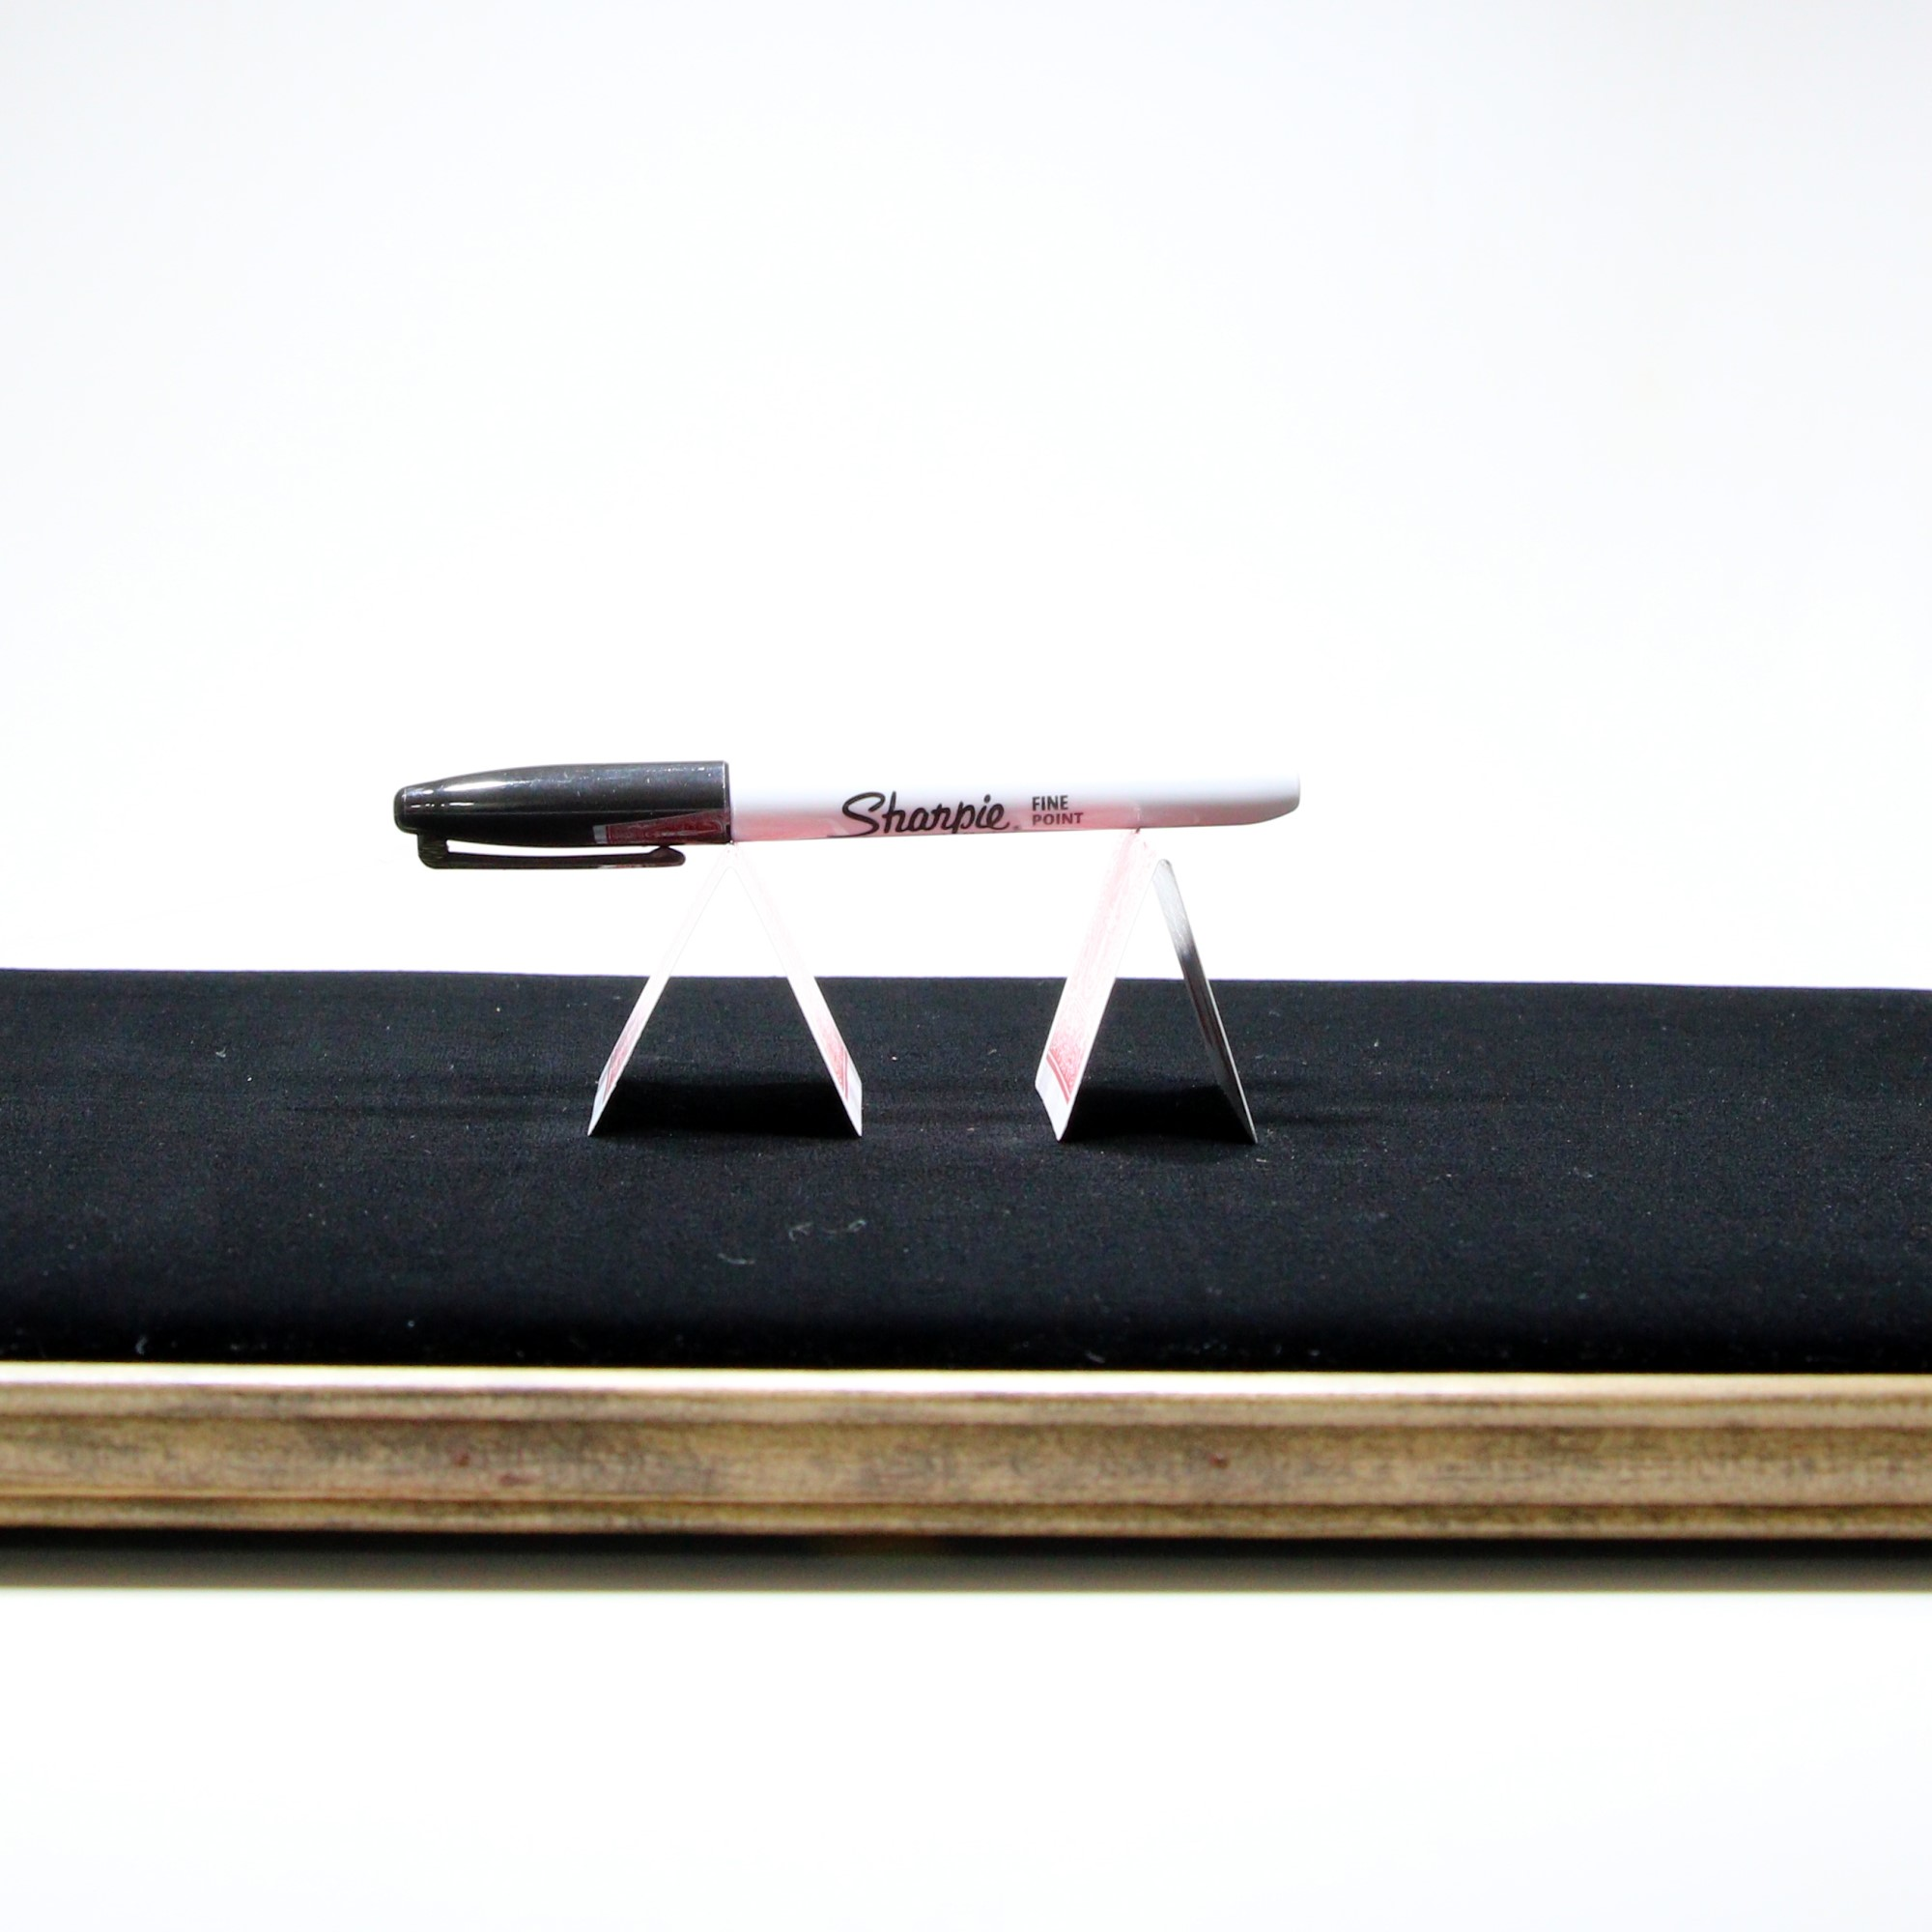 The NEW Incredible Floating Pen by Patrick Snowden, Kyle Elder